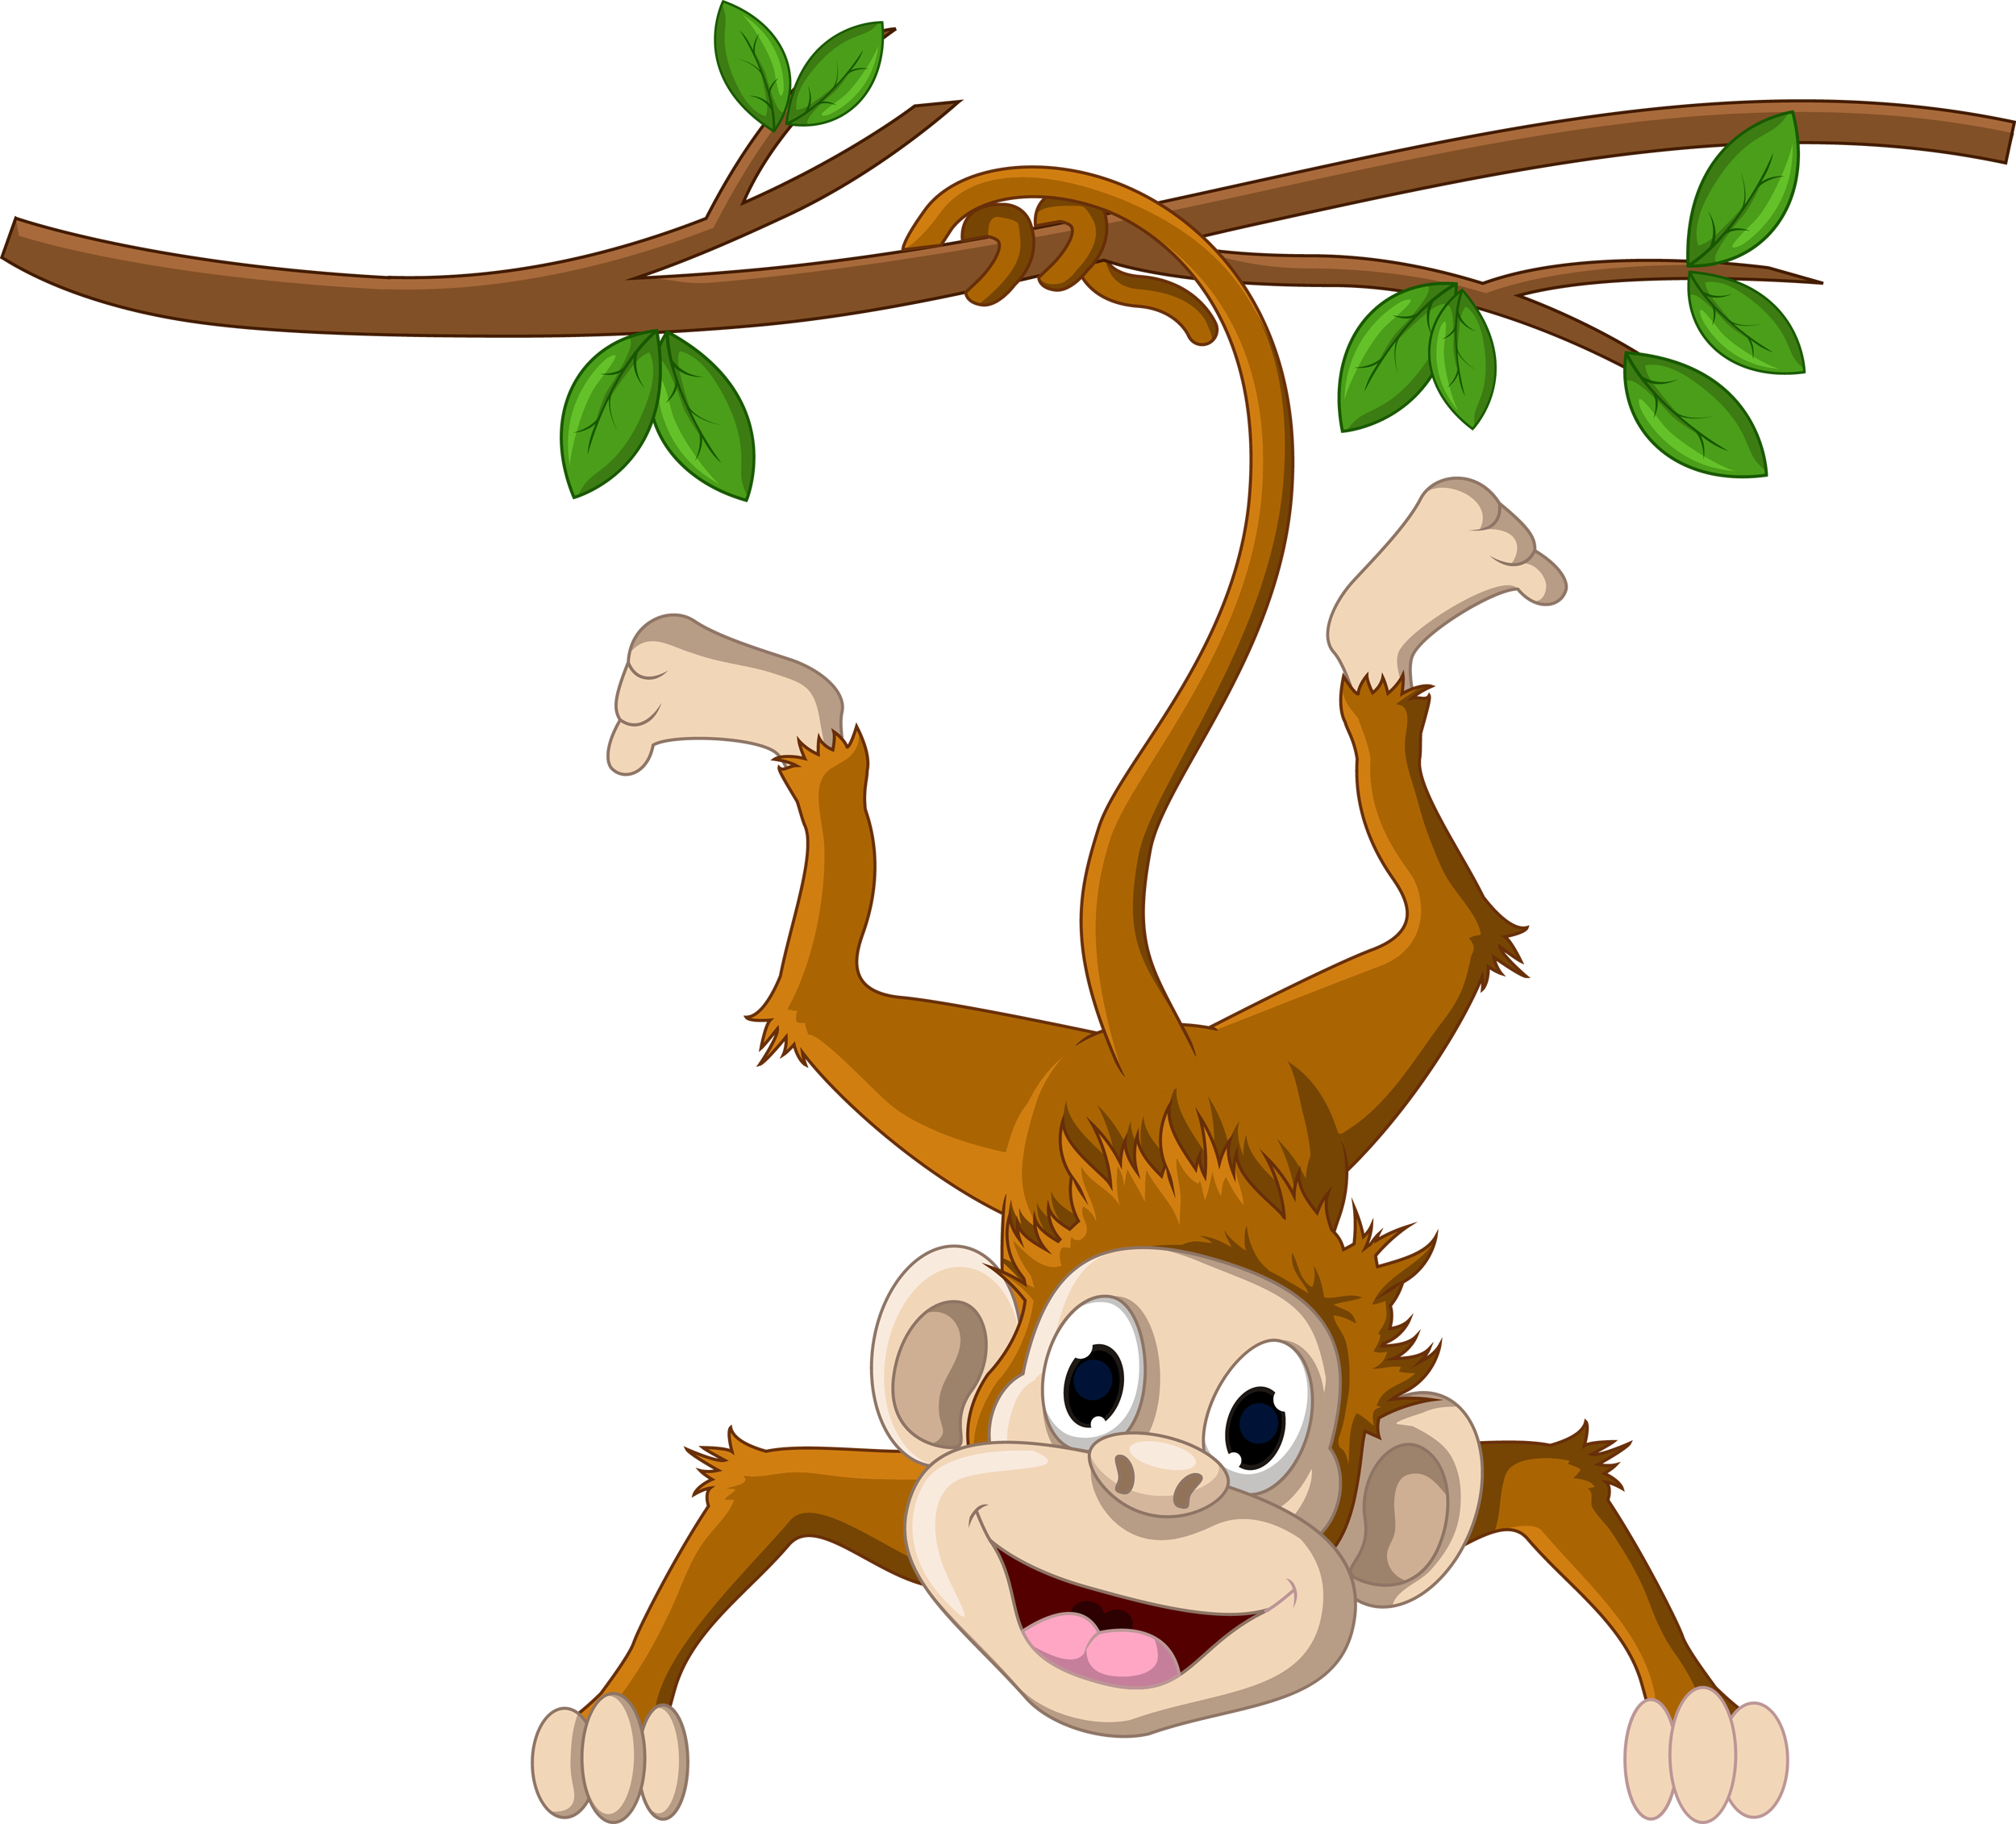 Monkey hanging from a tree clipart vector freeuse stock Monkey hanging from a tree 2500*2262 transprent Png Free Download ... vector freeuse stock